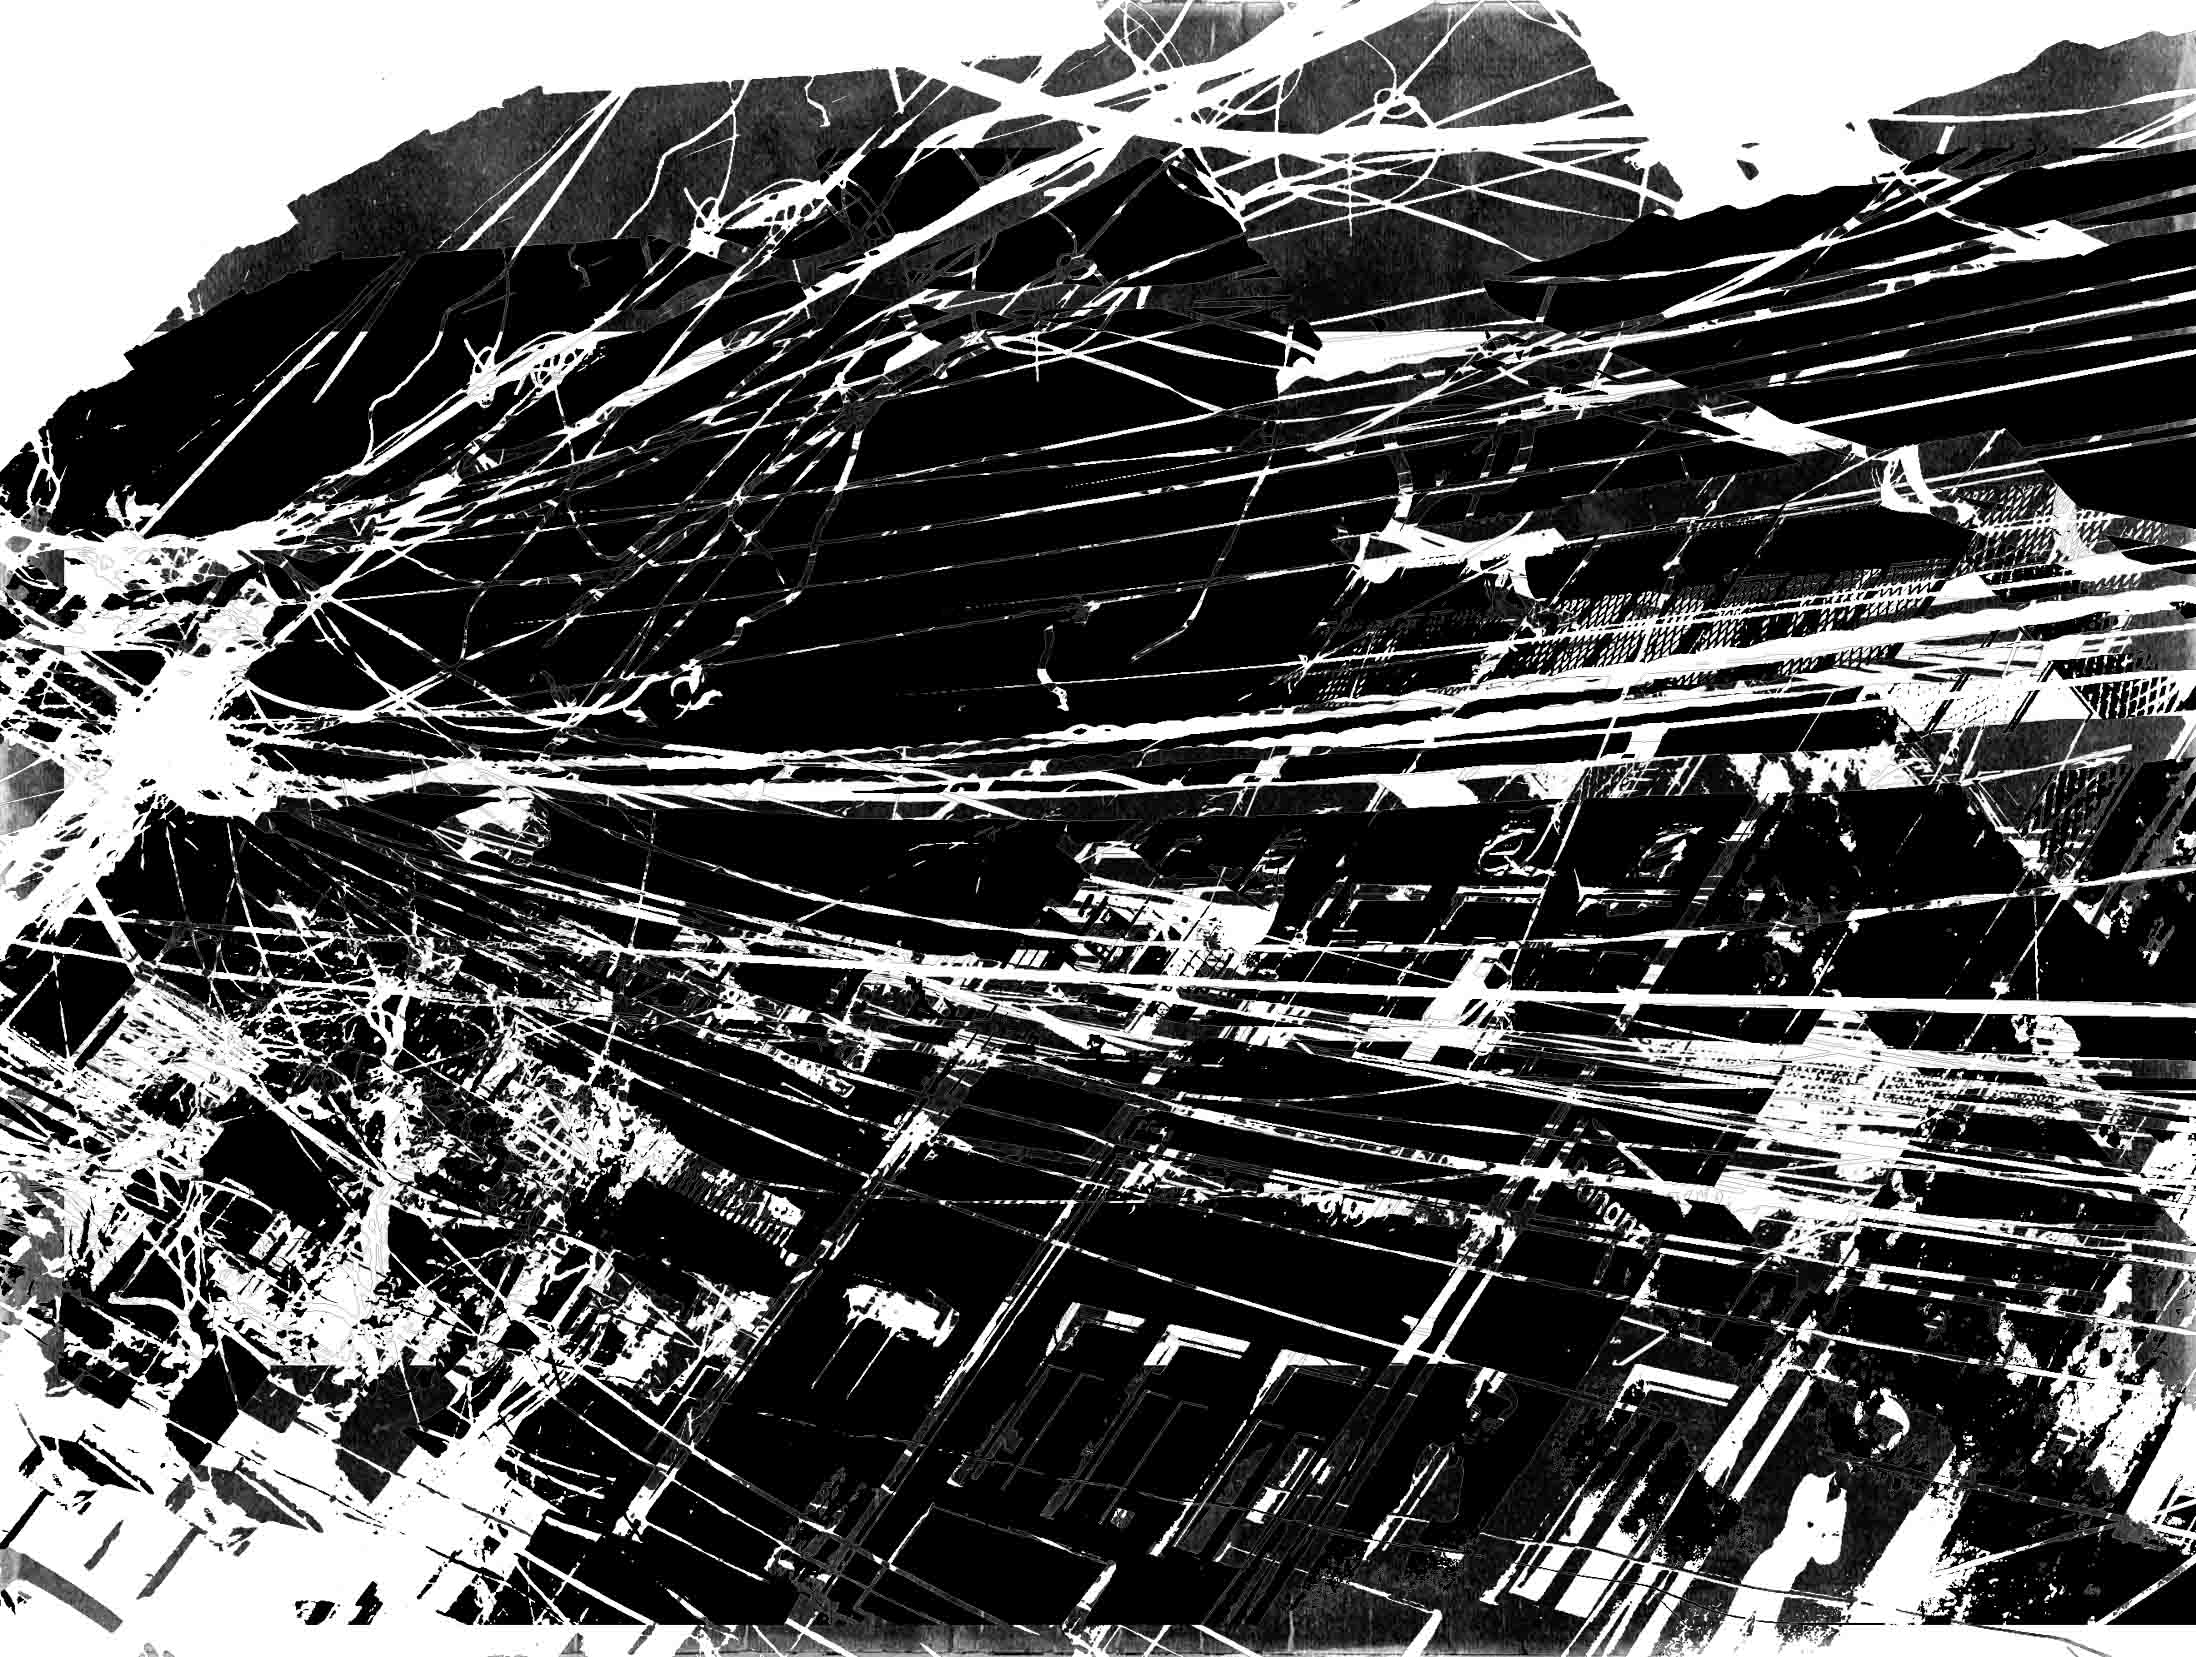 Connection I - Delhi - 2011 - Screen print on paper - 80 x 40 cm  - Edition of 01